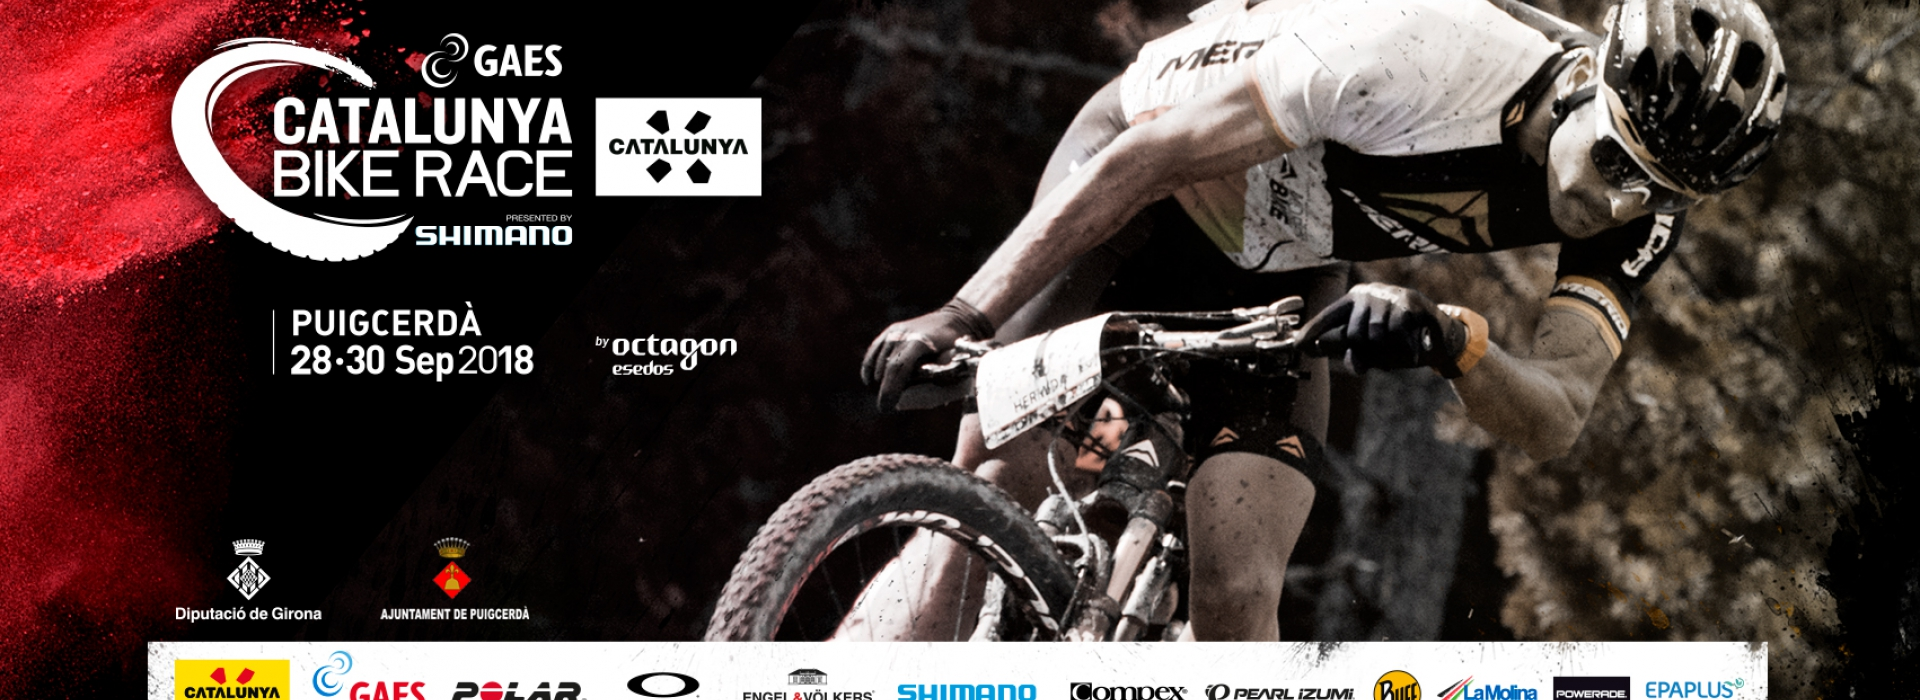 ¡Inscríbete a GAES Catalunya Bike Race presented by Shimano!